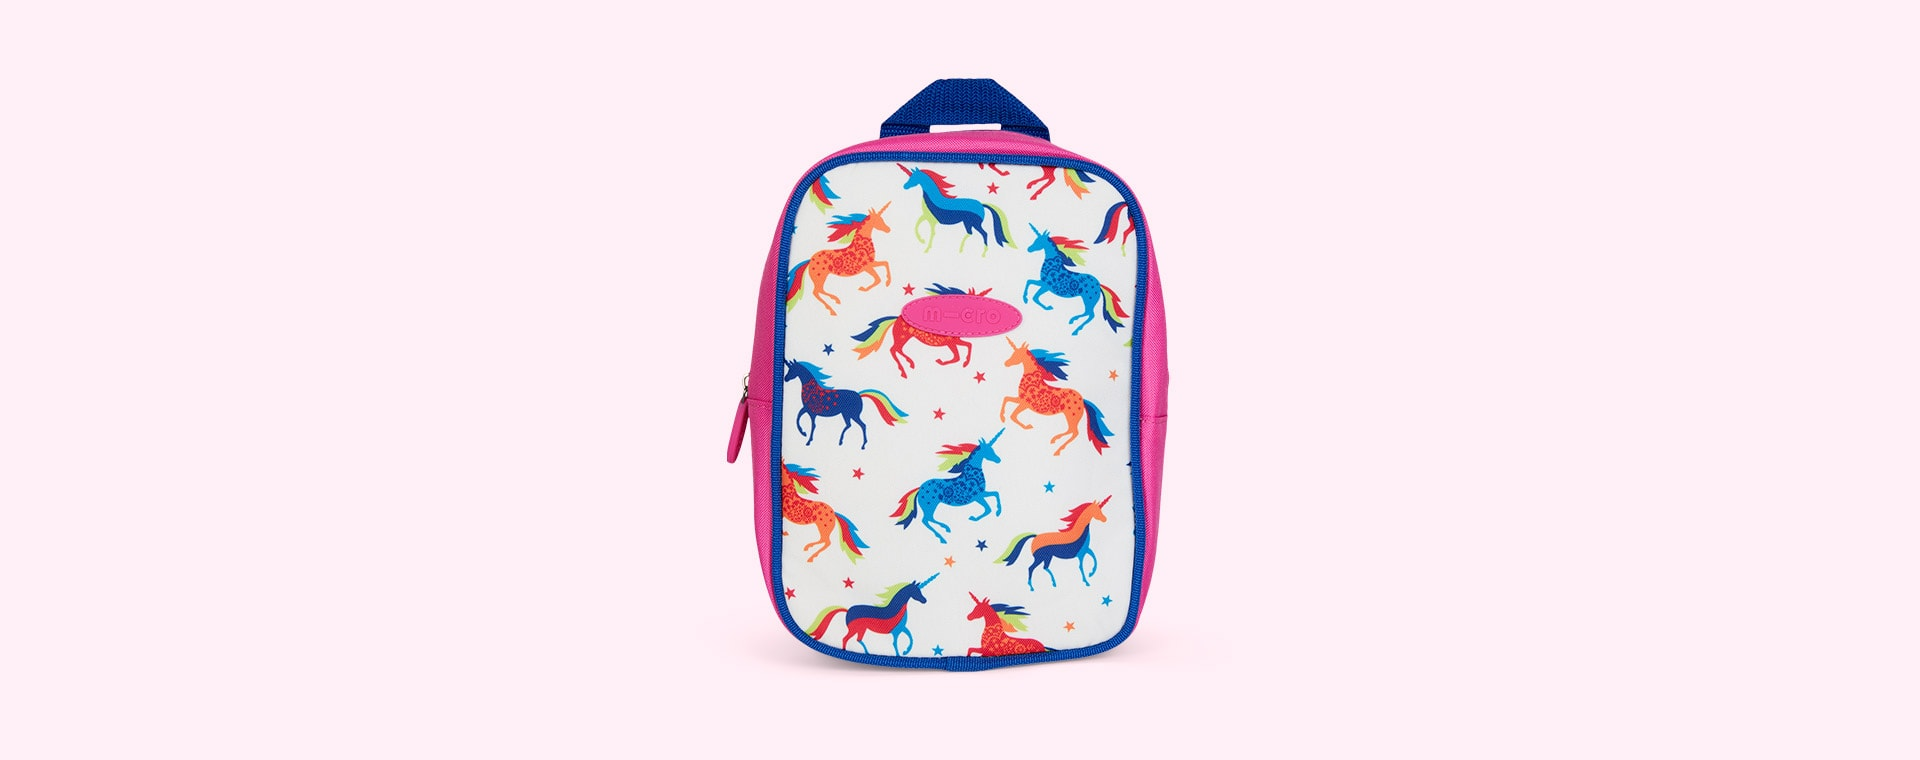 Unicorn Micro Scooters Lunch Bag